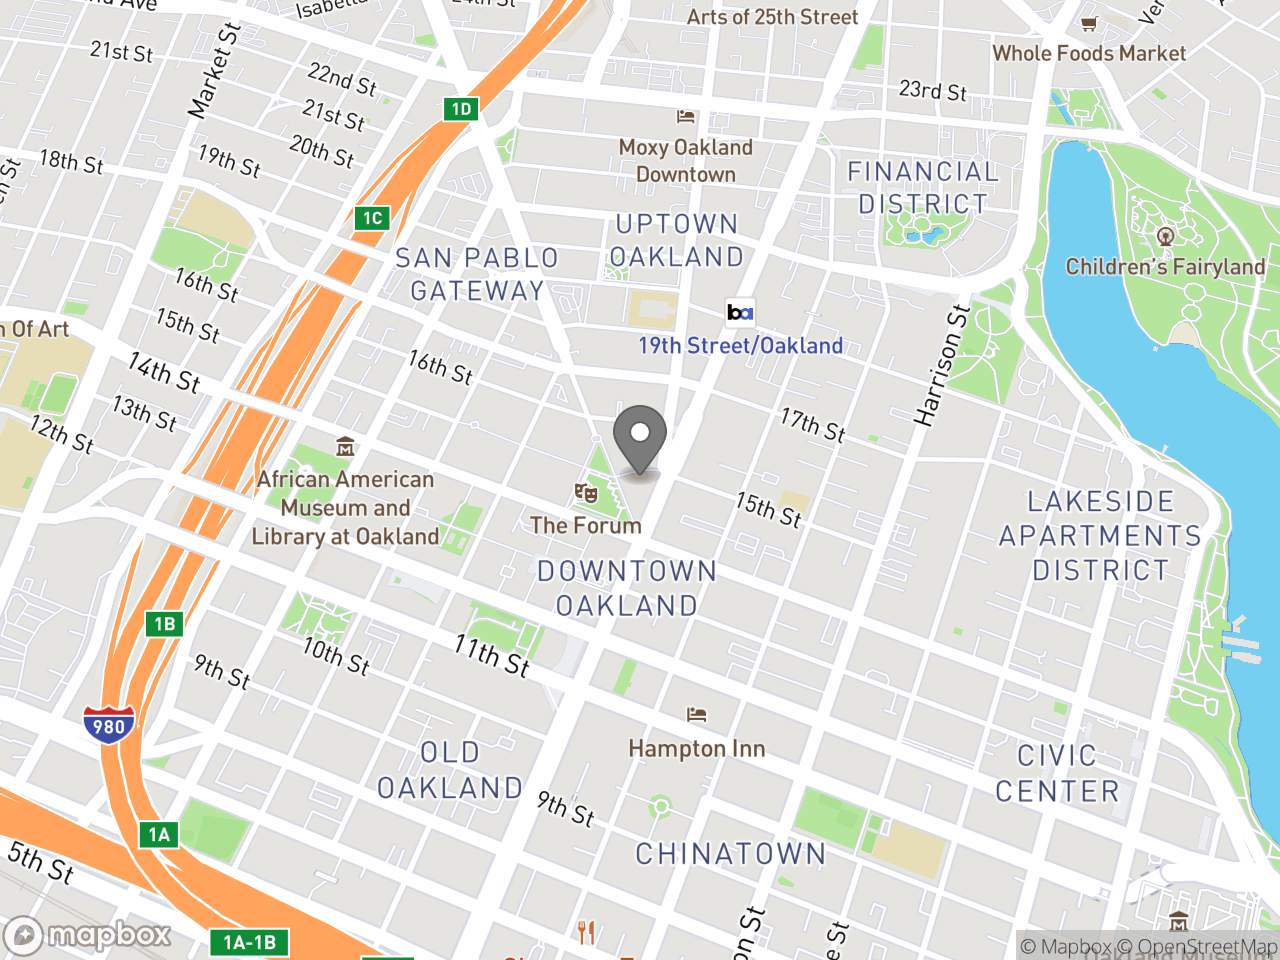 Map location for March 04, 2020 AC-OCAP Committee Meeting, located at 150 Frank H. Ogawa Plaza in Oakland, CA 94612